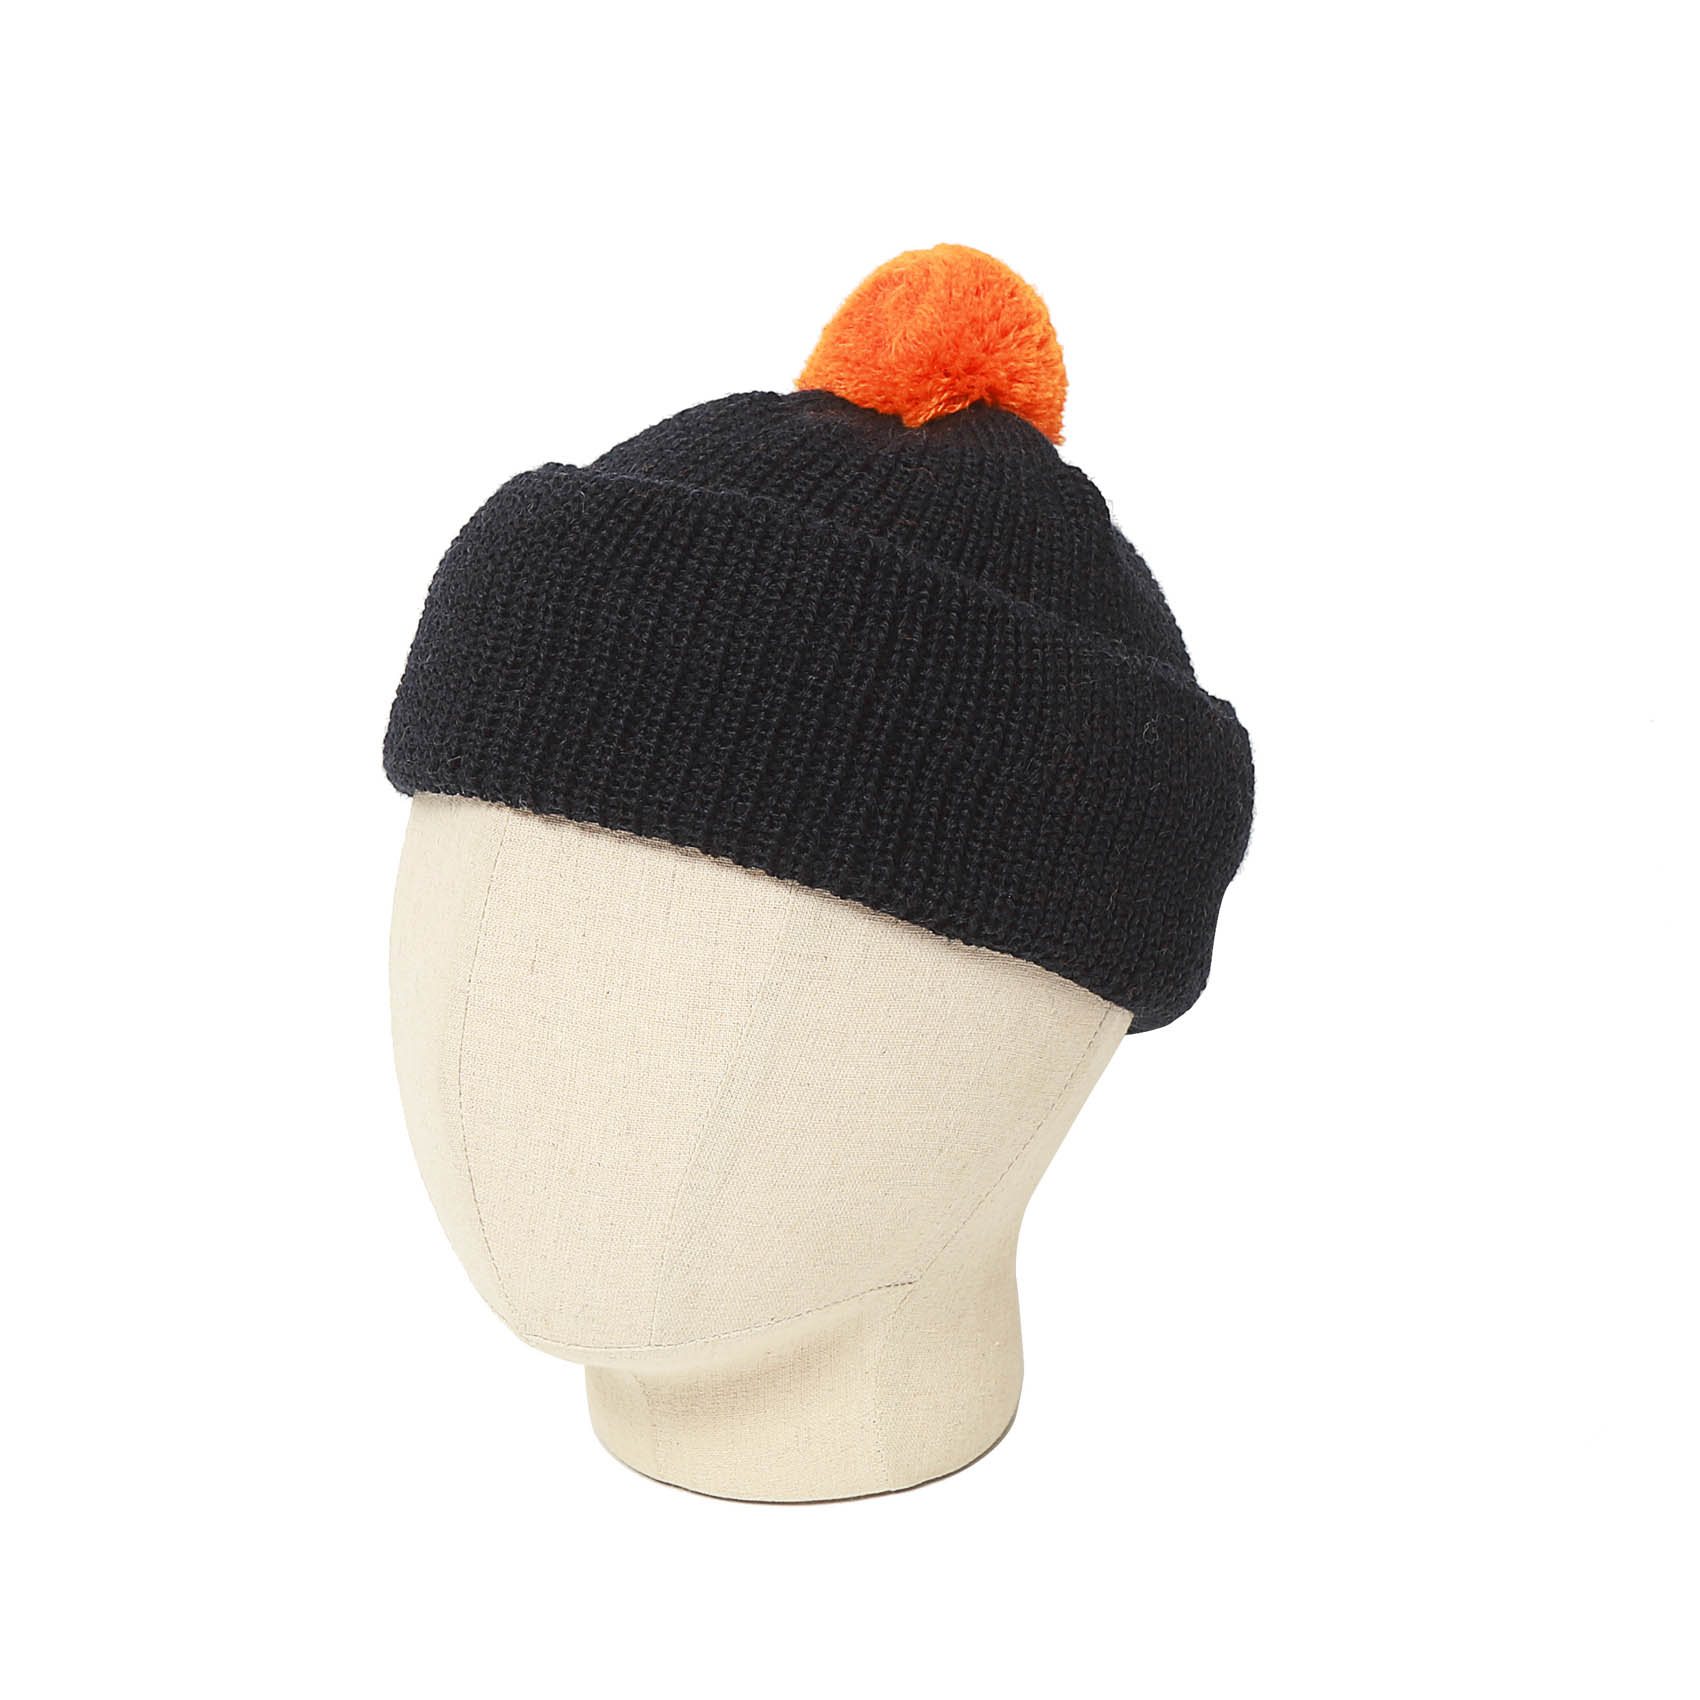 BOBBLE HAT - NAVY/ORANGE